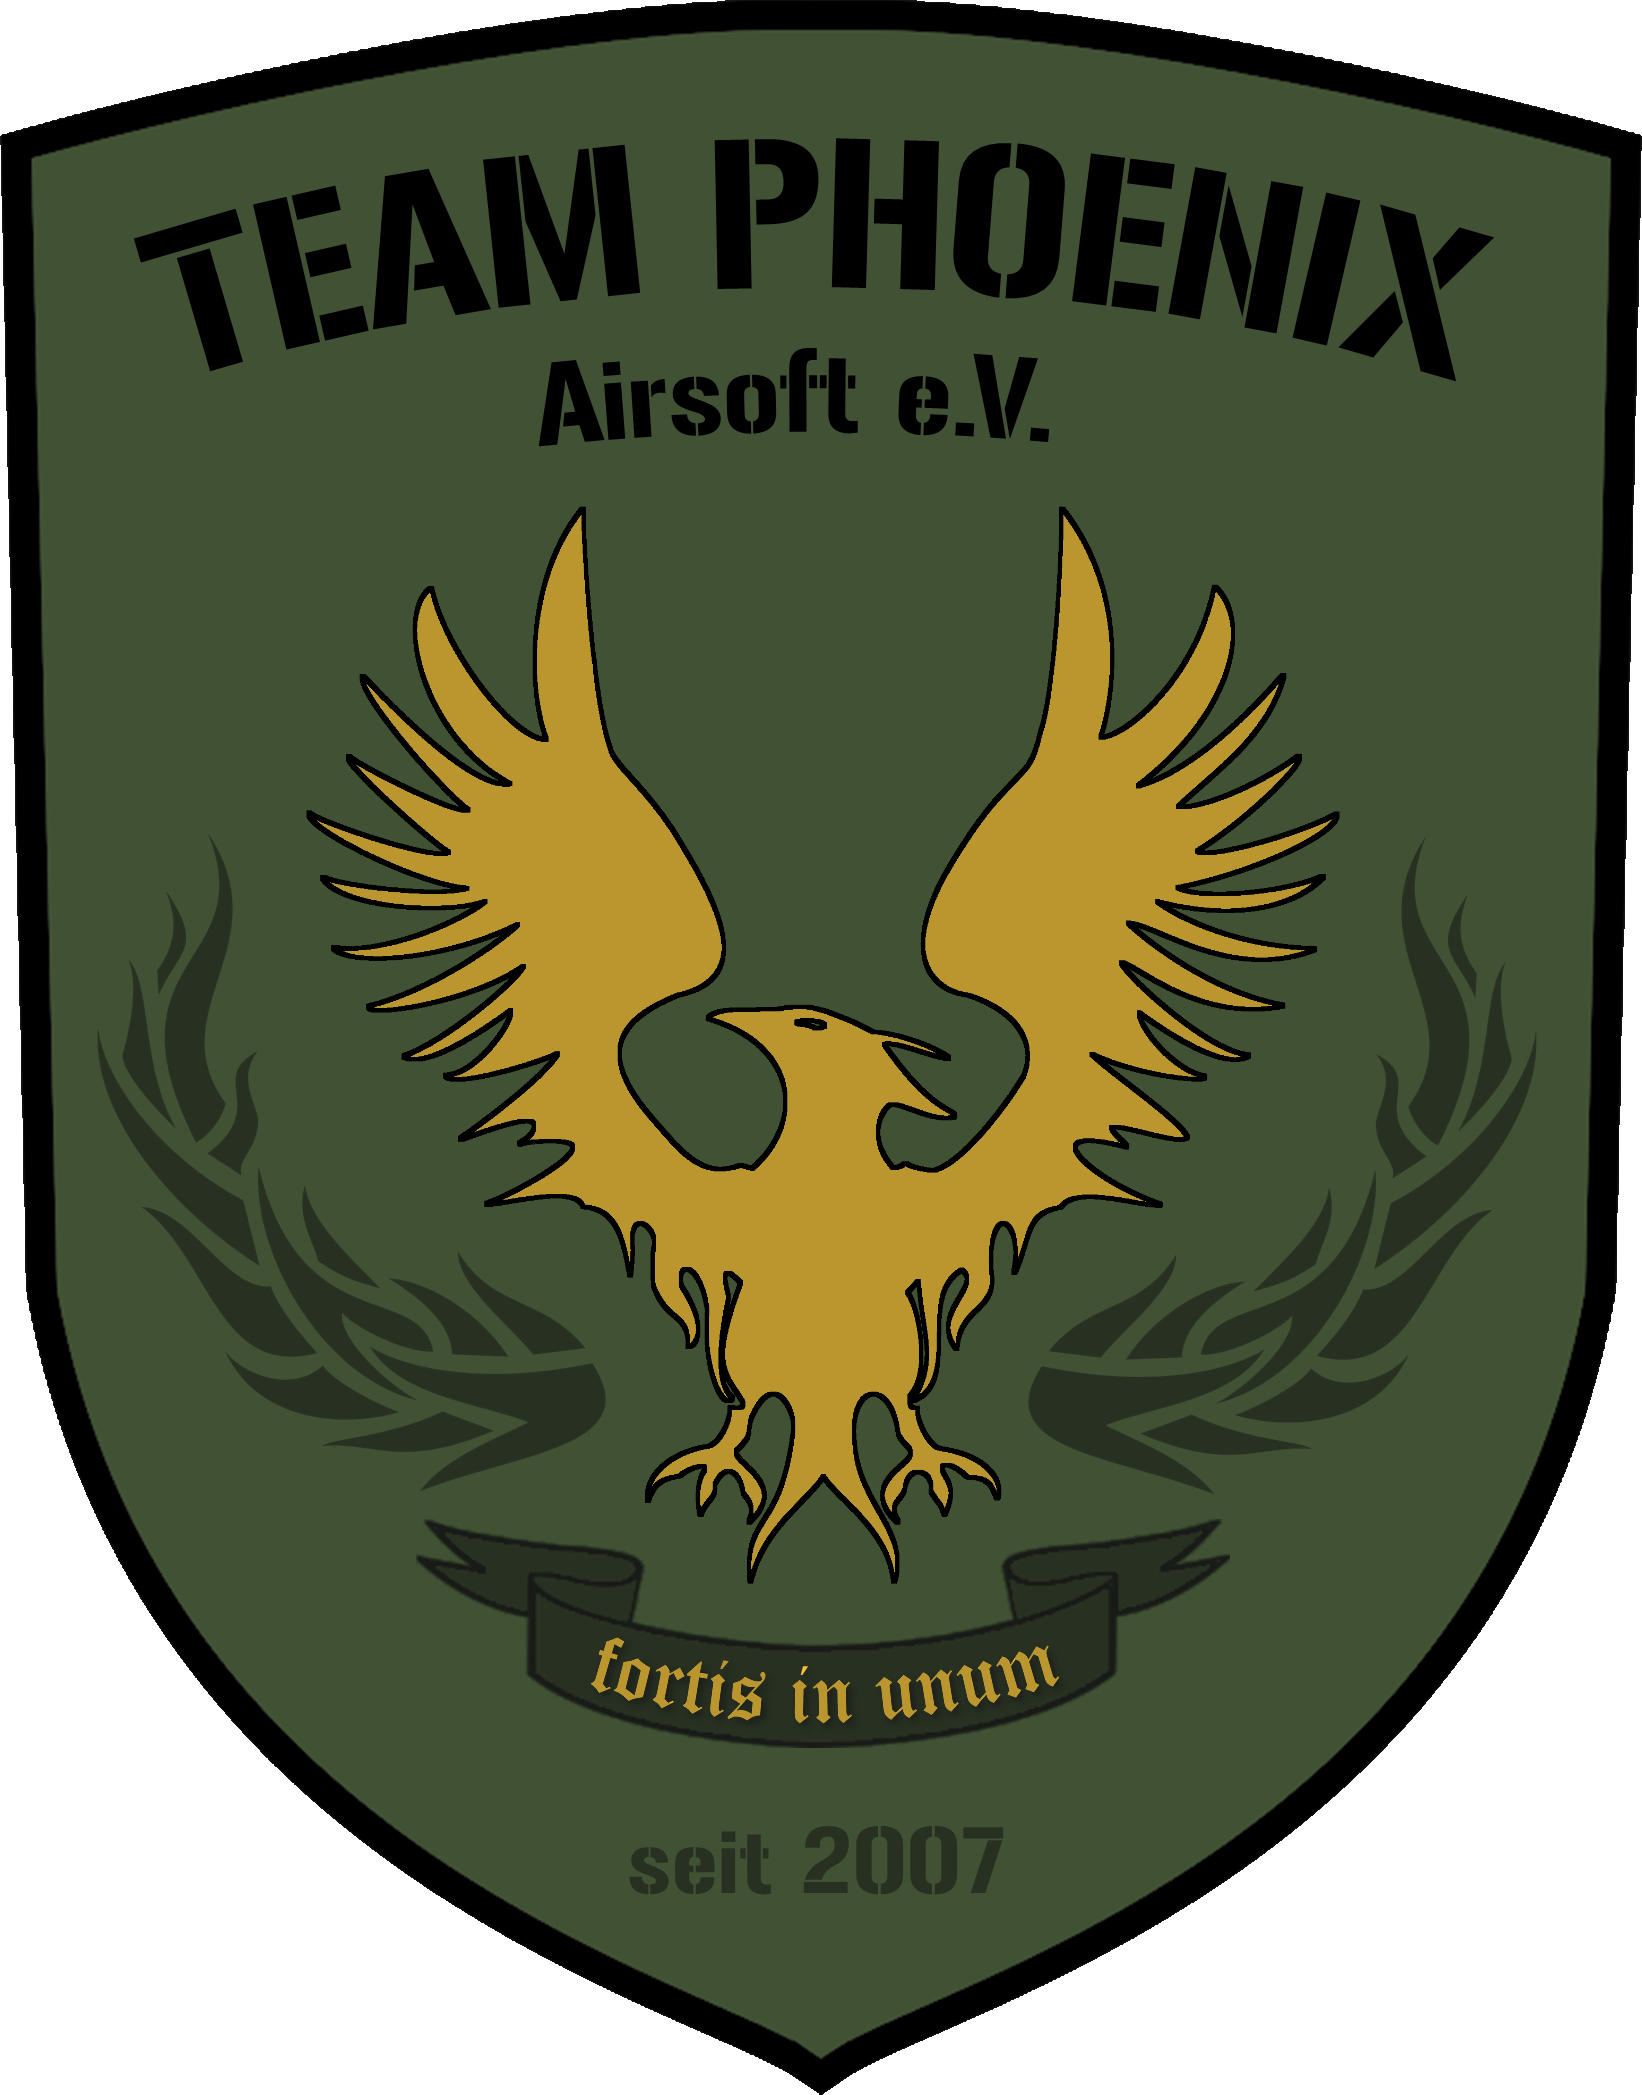 Team Phoenix Airsoft e.V.